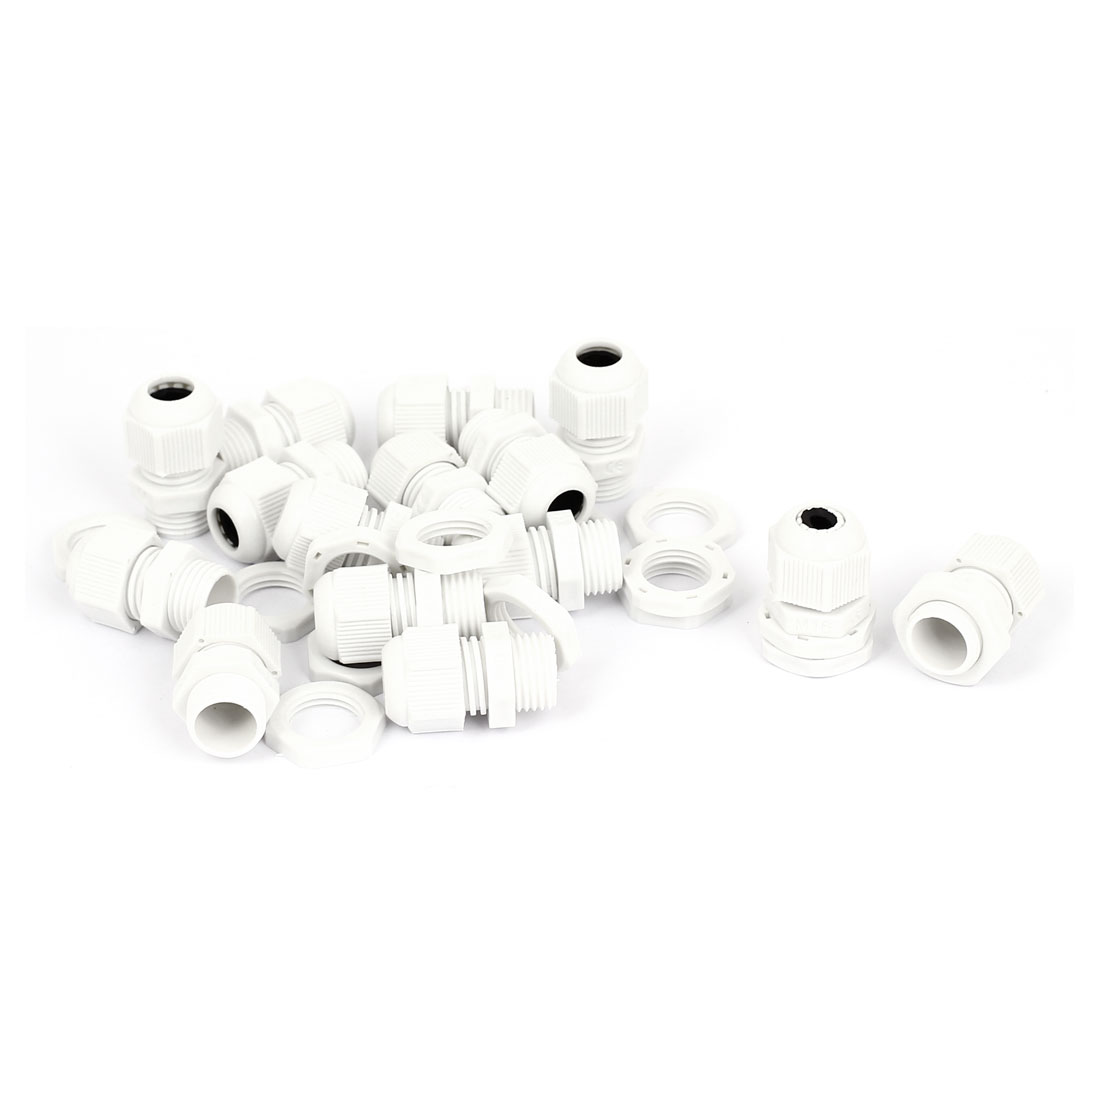 15 Pcs White Plastic PG9 16mm Male Thread Dia Waterproof Locknut Stuffing Cable Glands Fastener